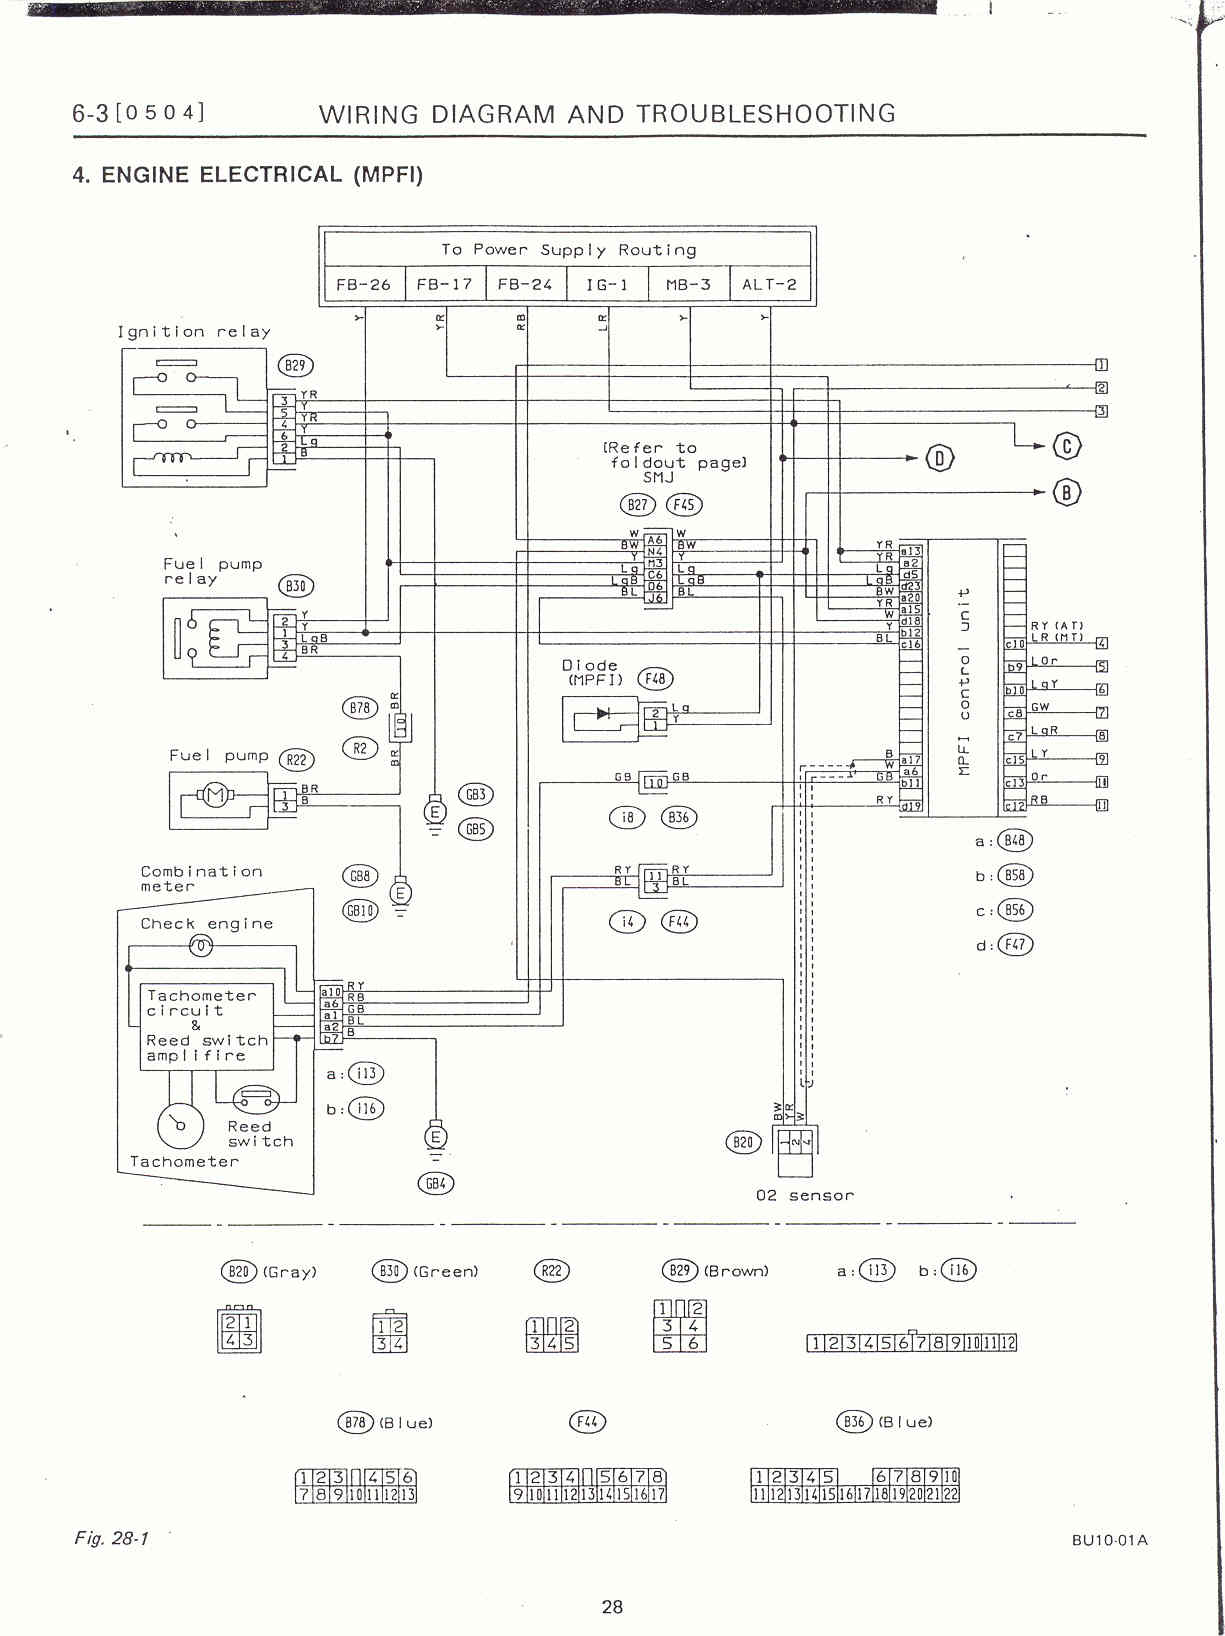 Subaru Engine Wiring Diagram - Library Of Wiring Diagram •